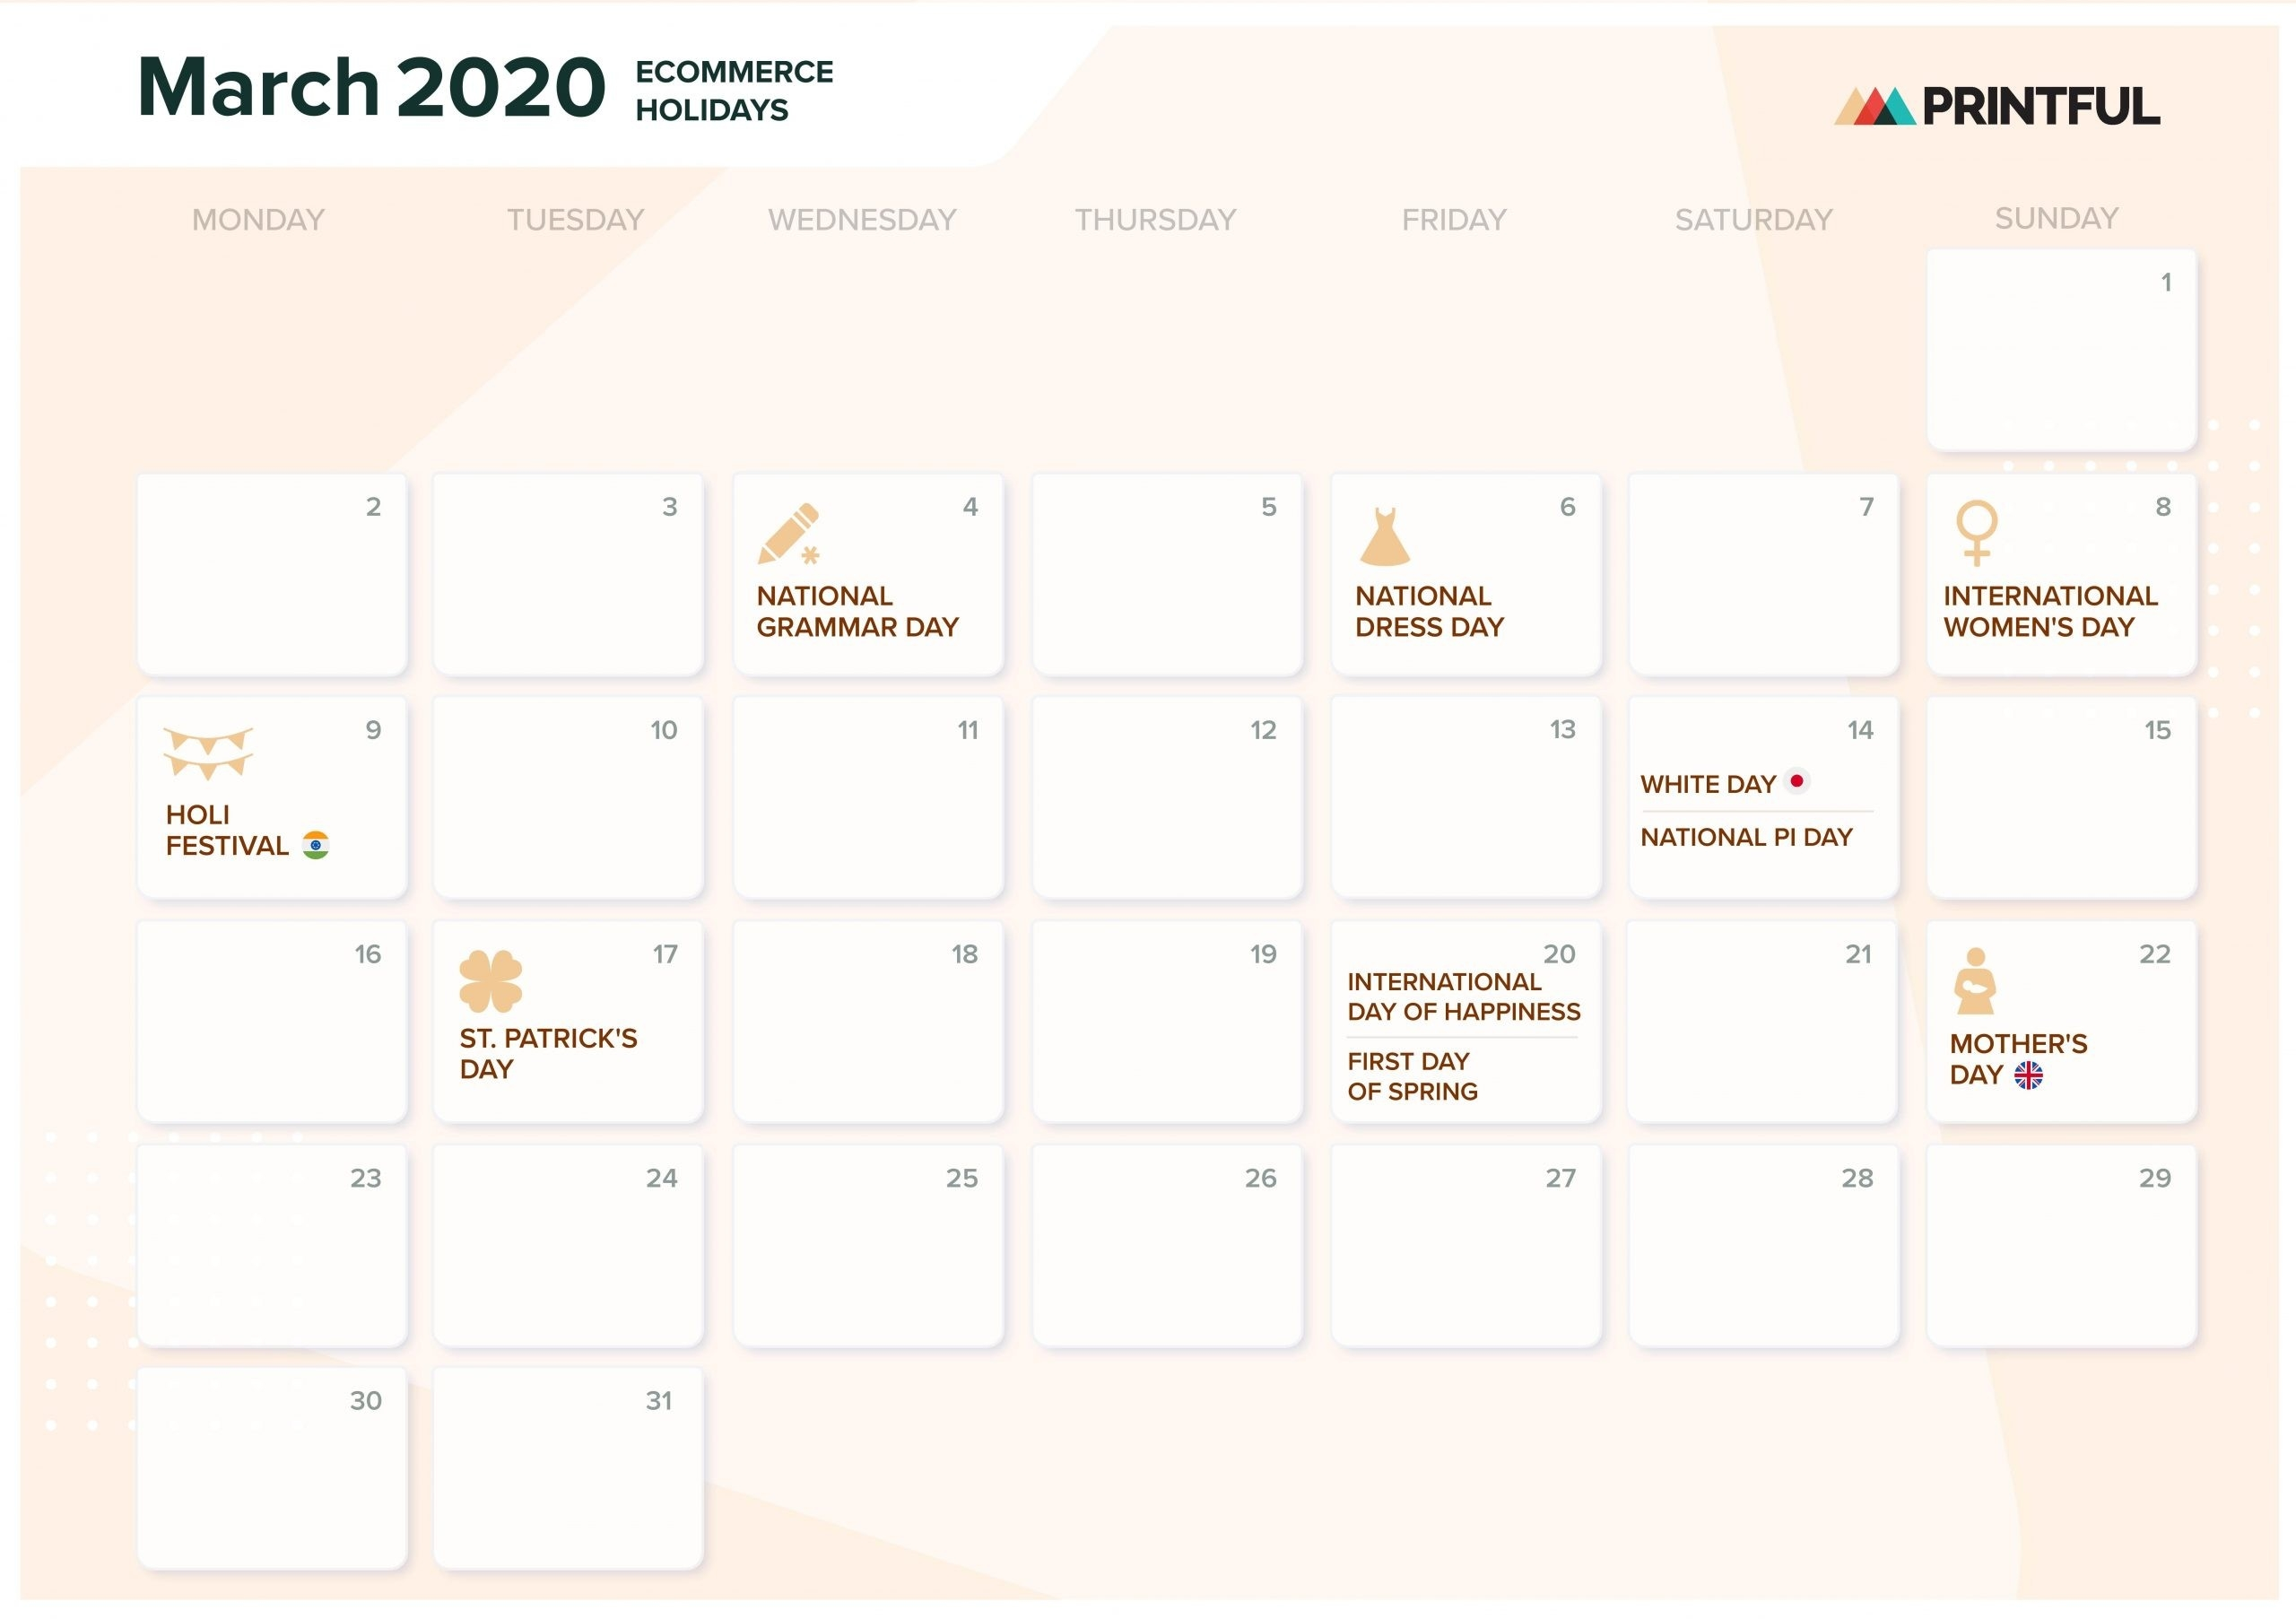 The Ultimate 2020 Ecommerce Holiday Marketing Calendar-Nz School Holidays 2020